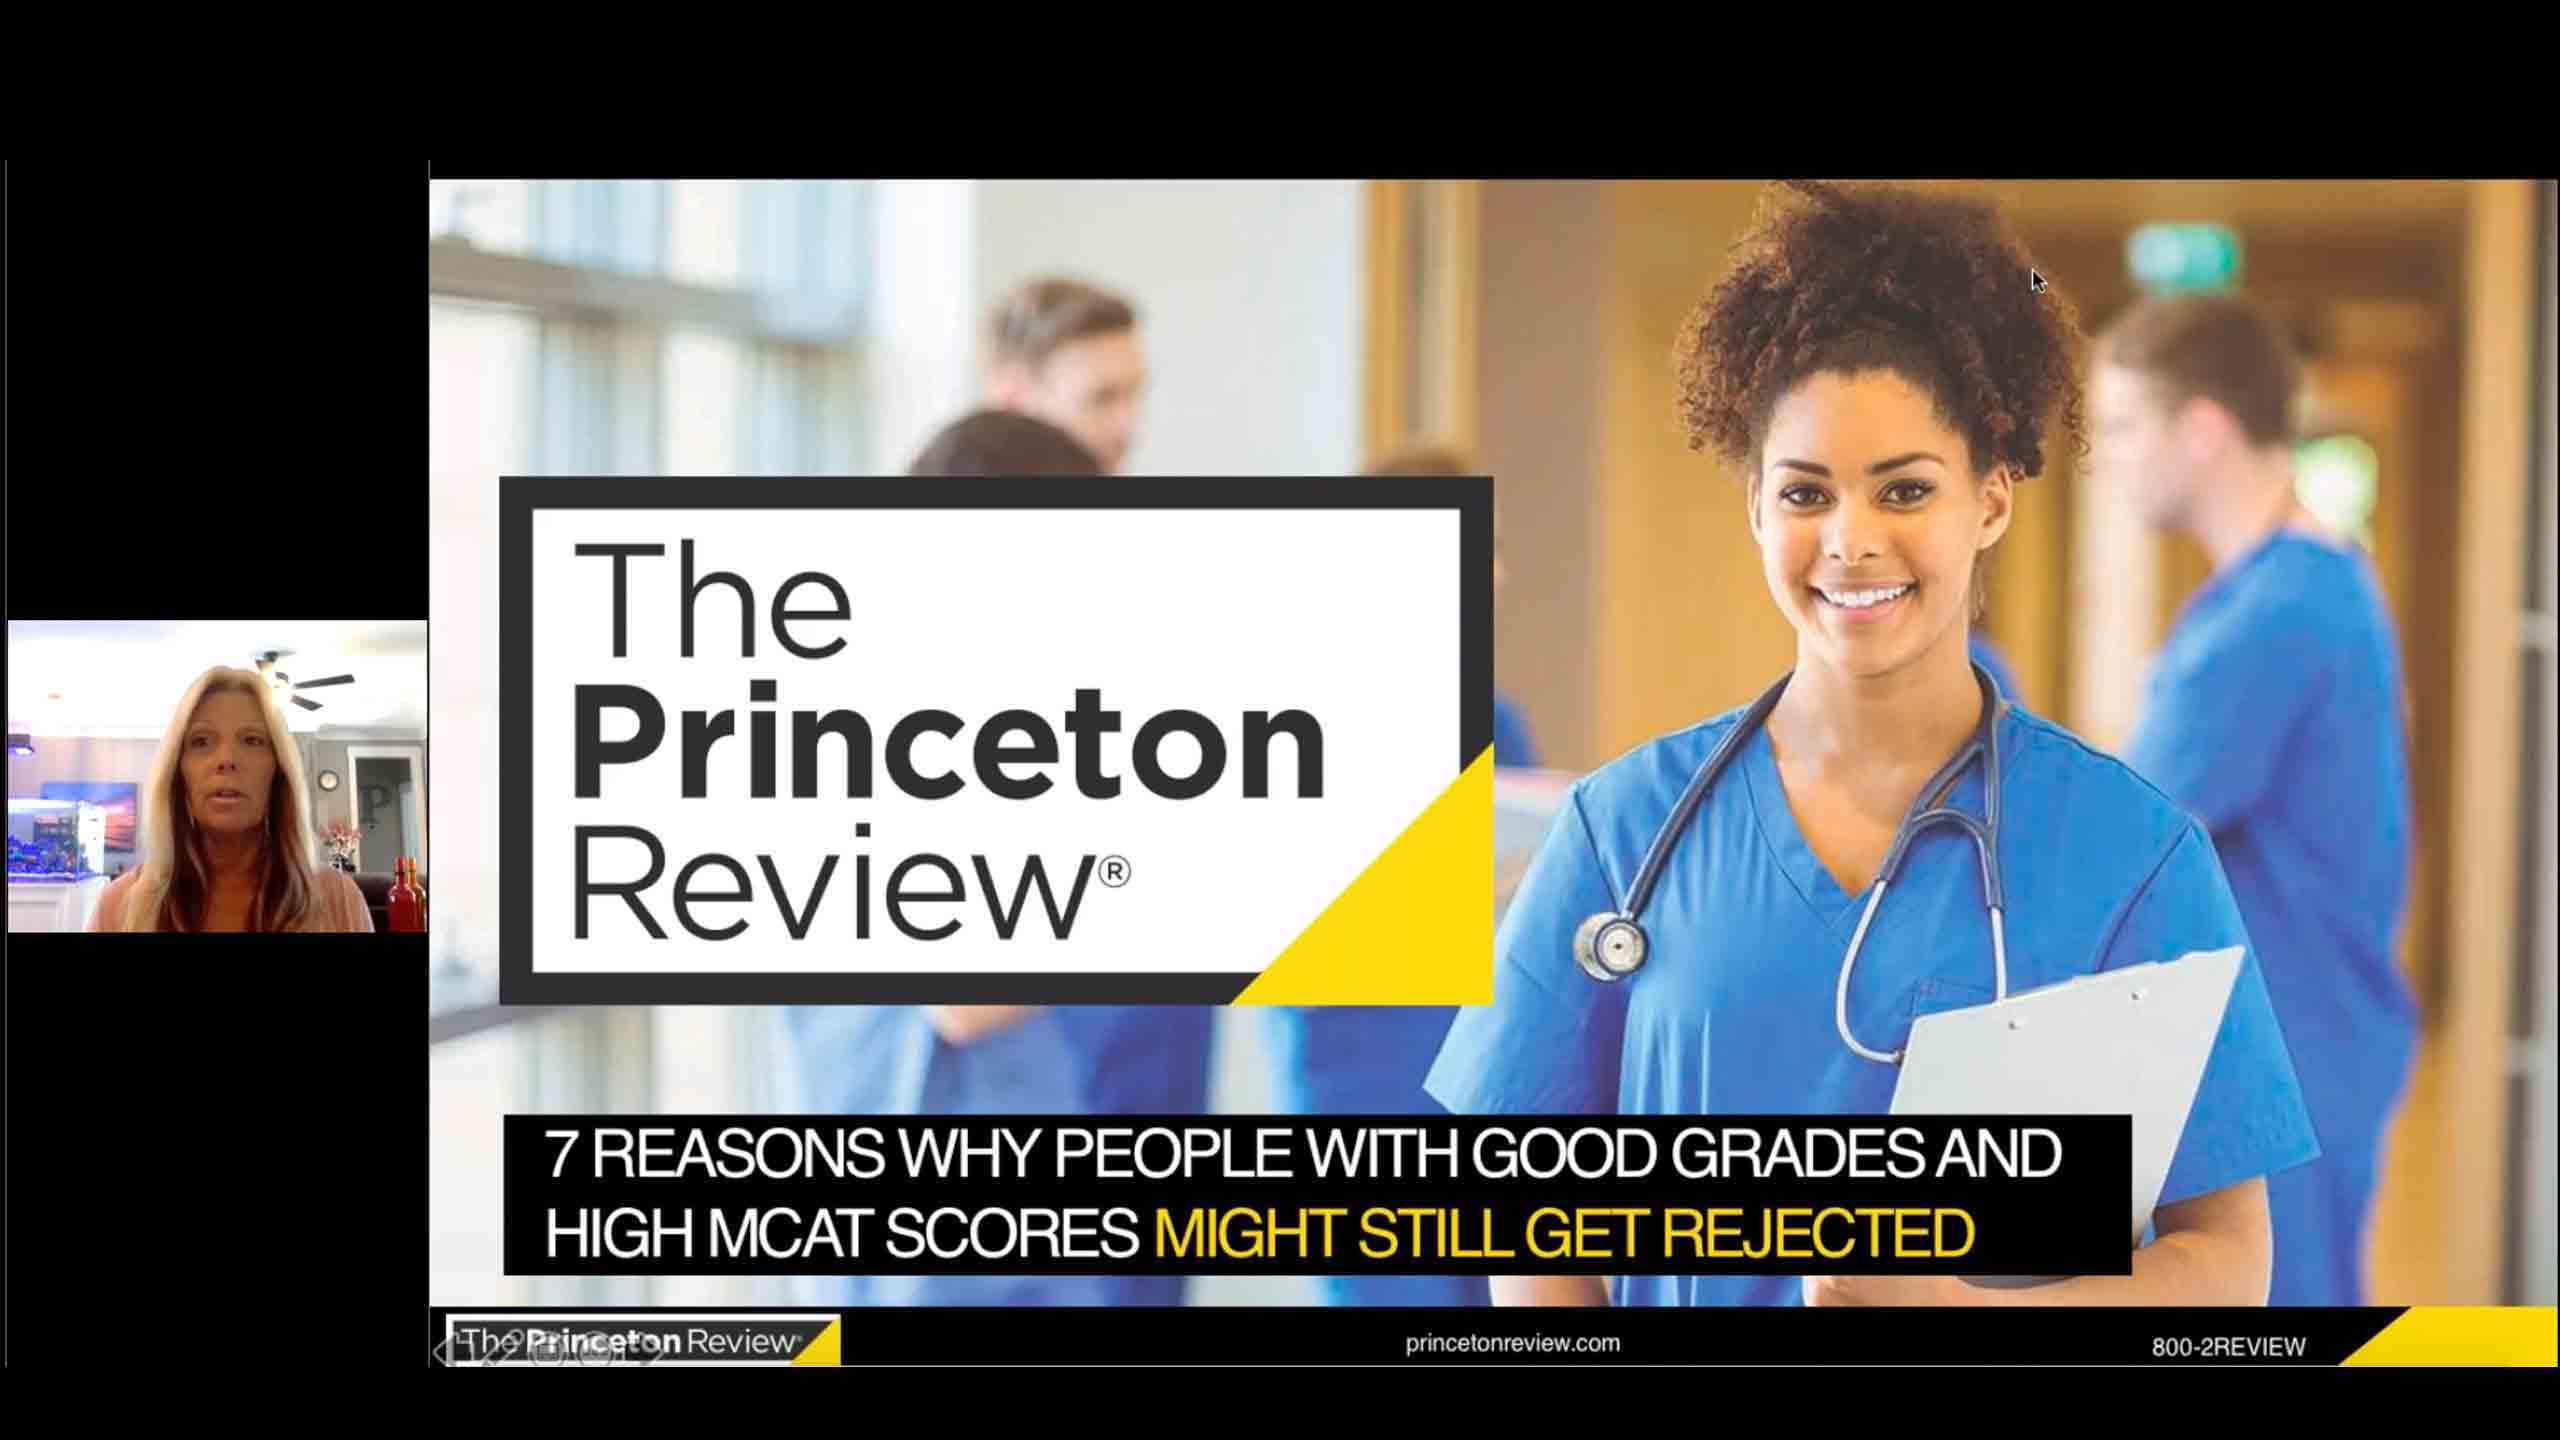 7 Reasons why kids with good grades and MCAT scores get denied